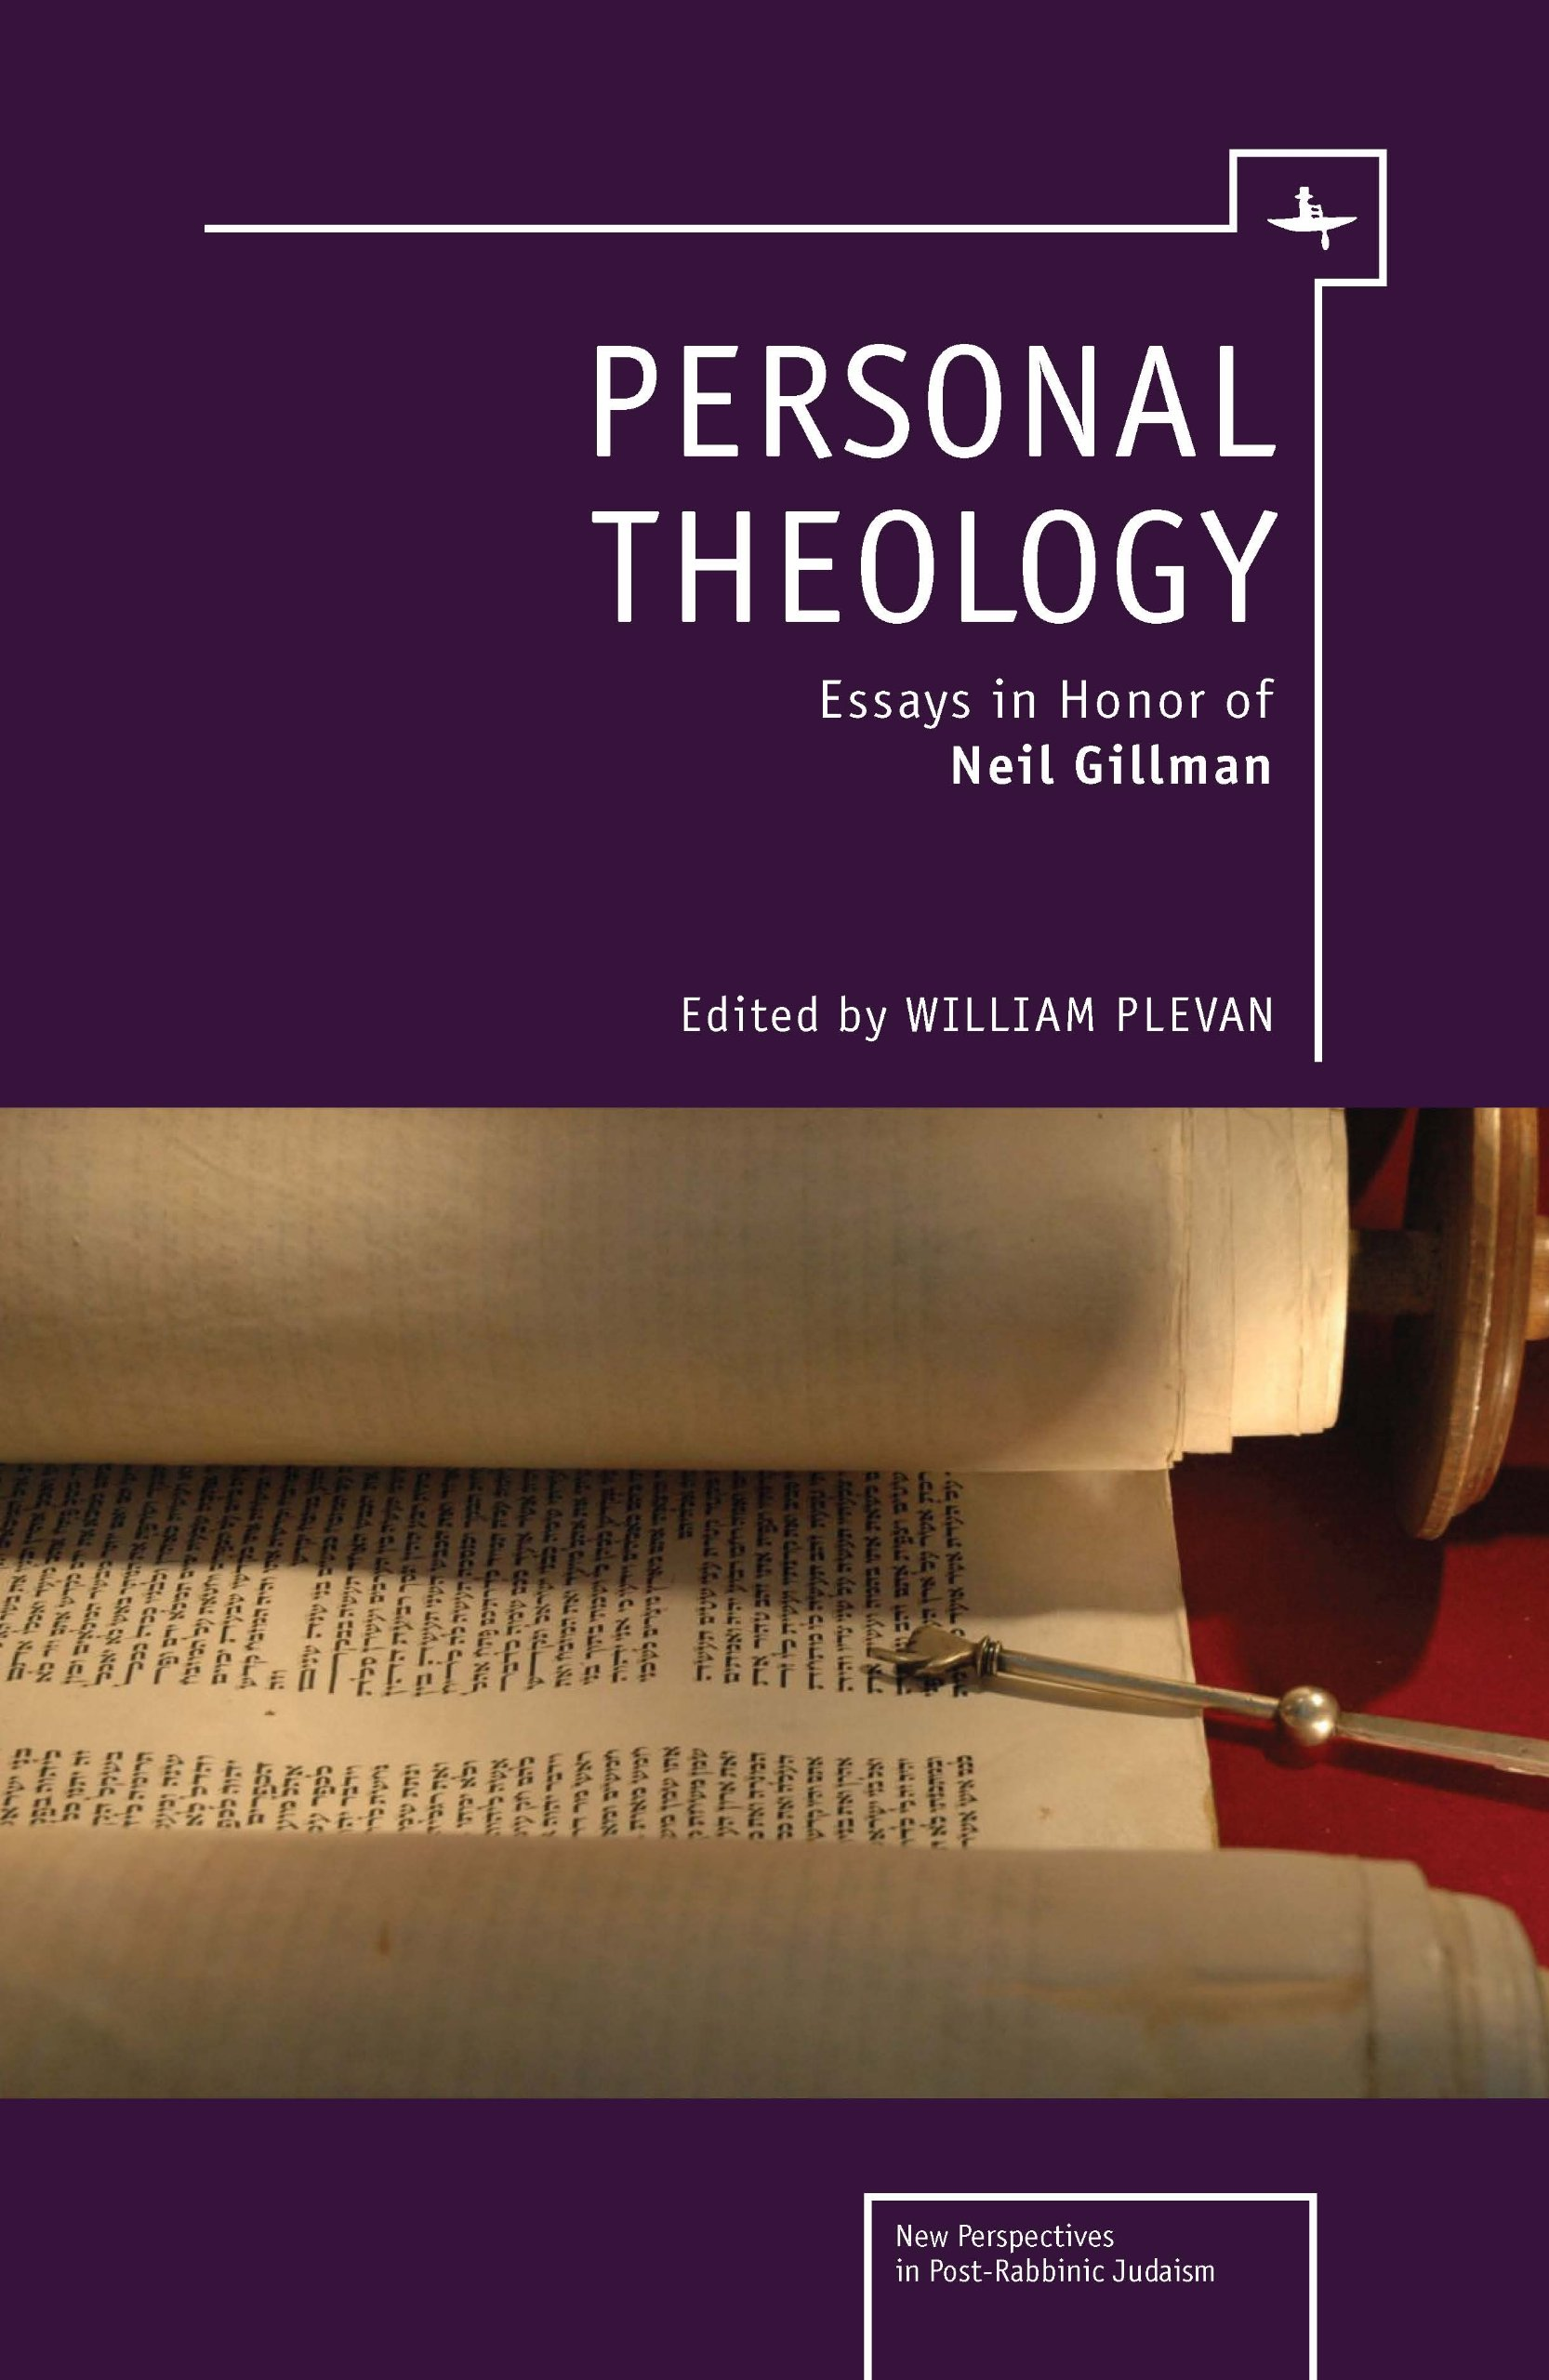 Personal Theology: Essays in Honor of Neil Gillman (New Perspectives in Post-Rabbinic Judaism)